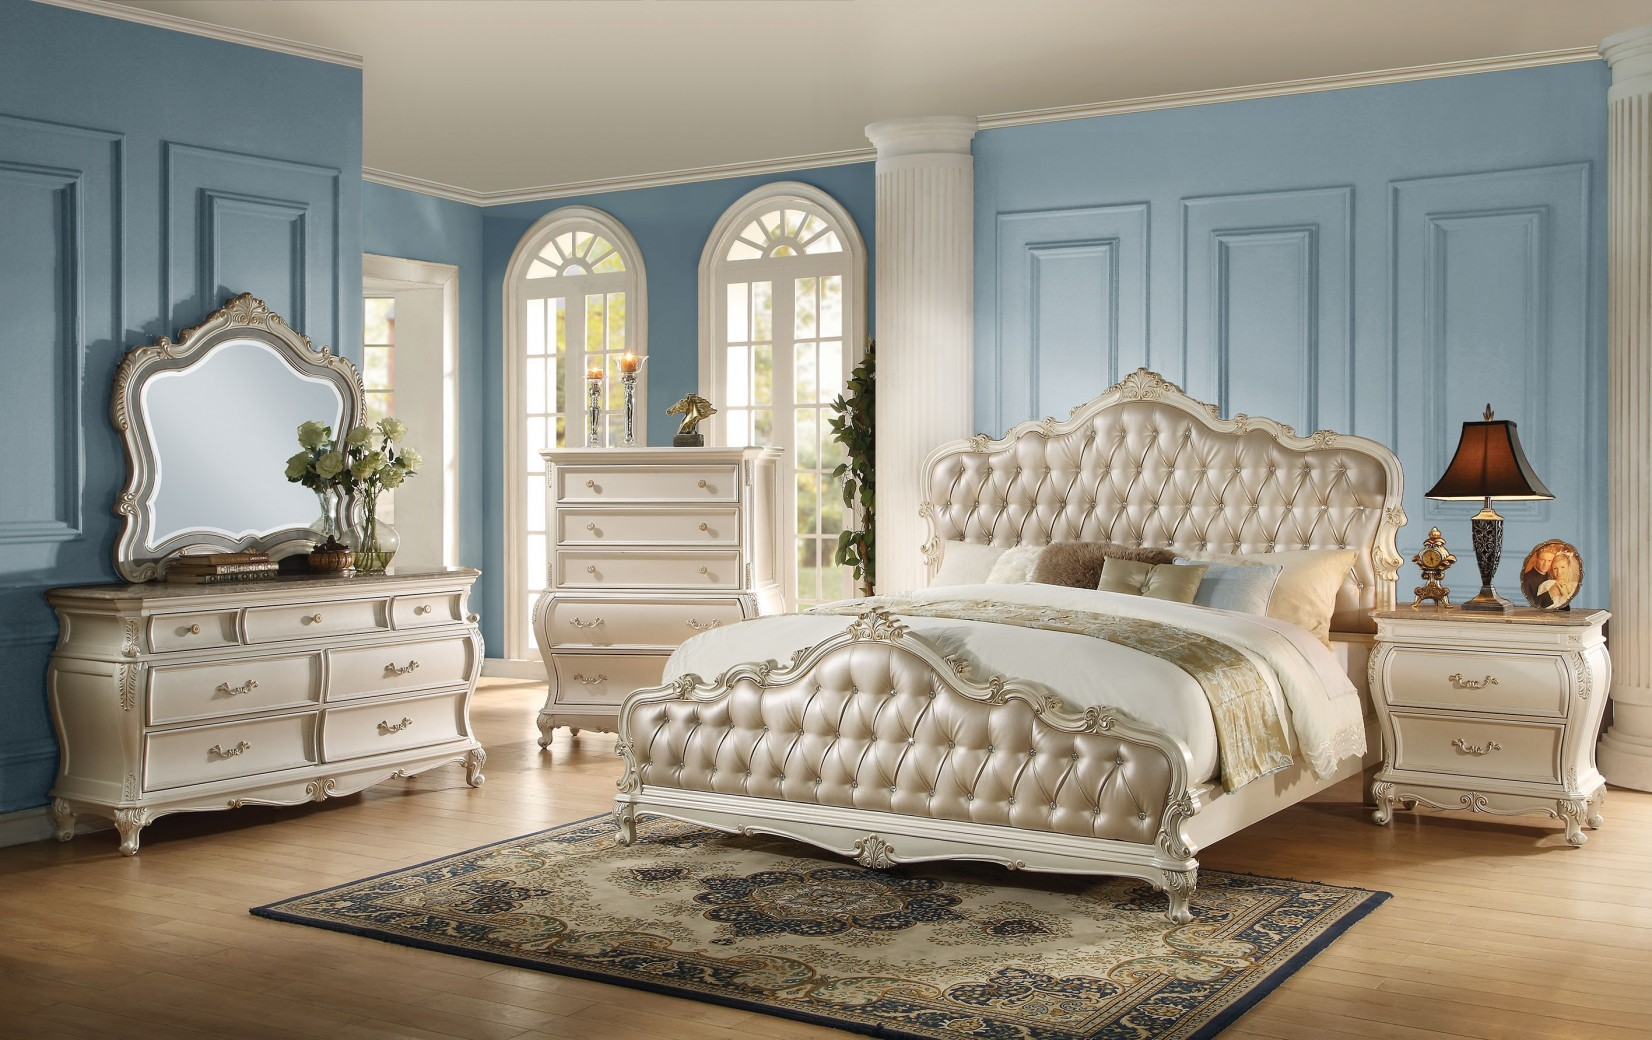 Kamar Sofia 23540 Acme Chantelle Bedroom Collection Pearl White Finish